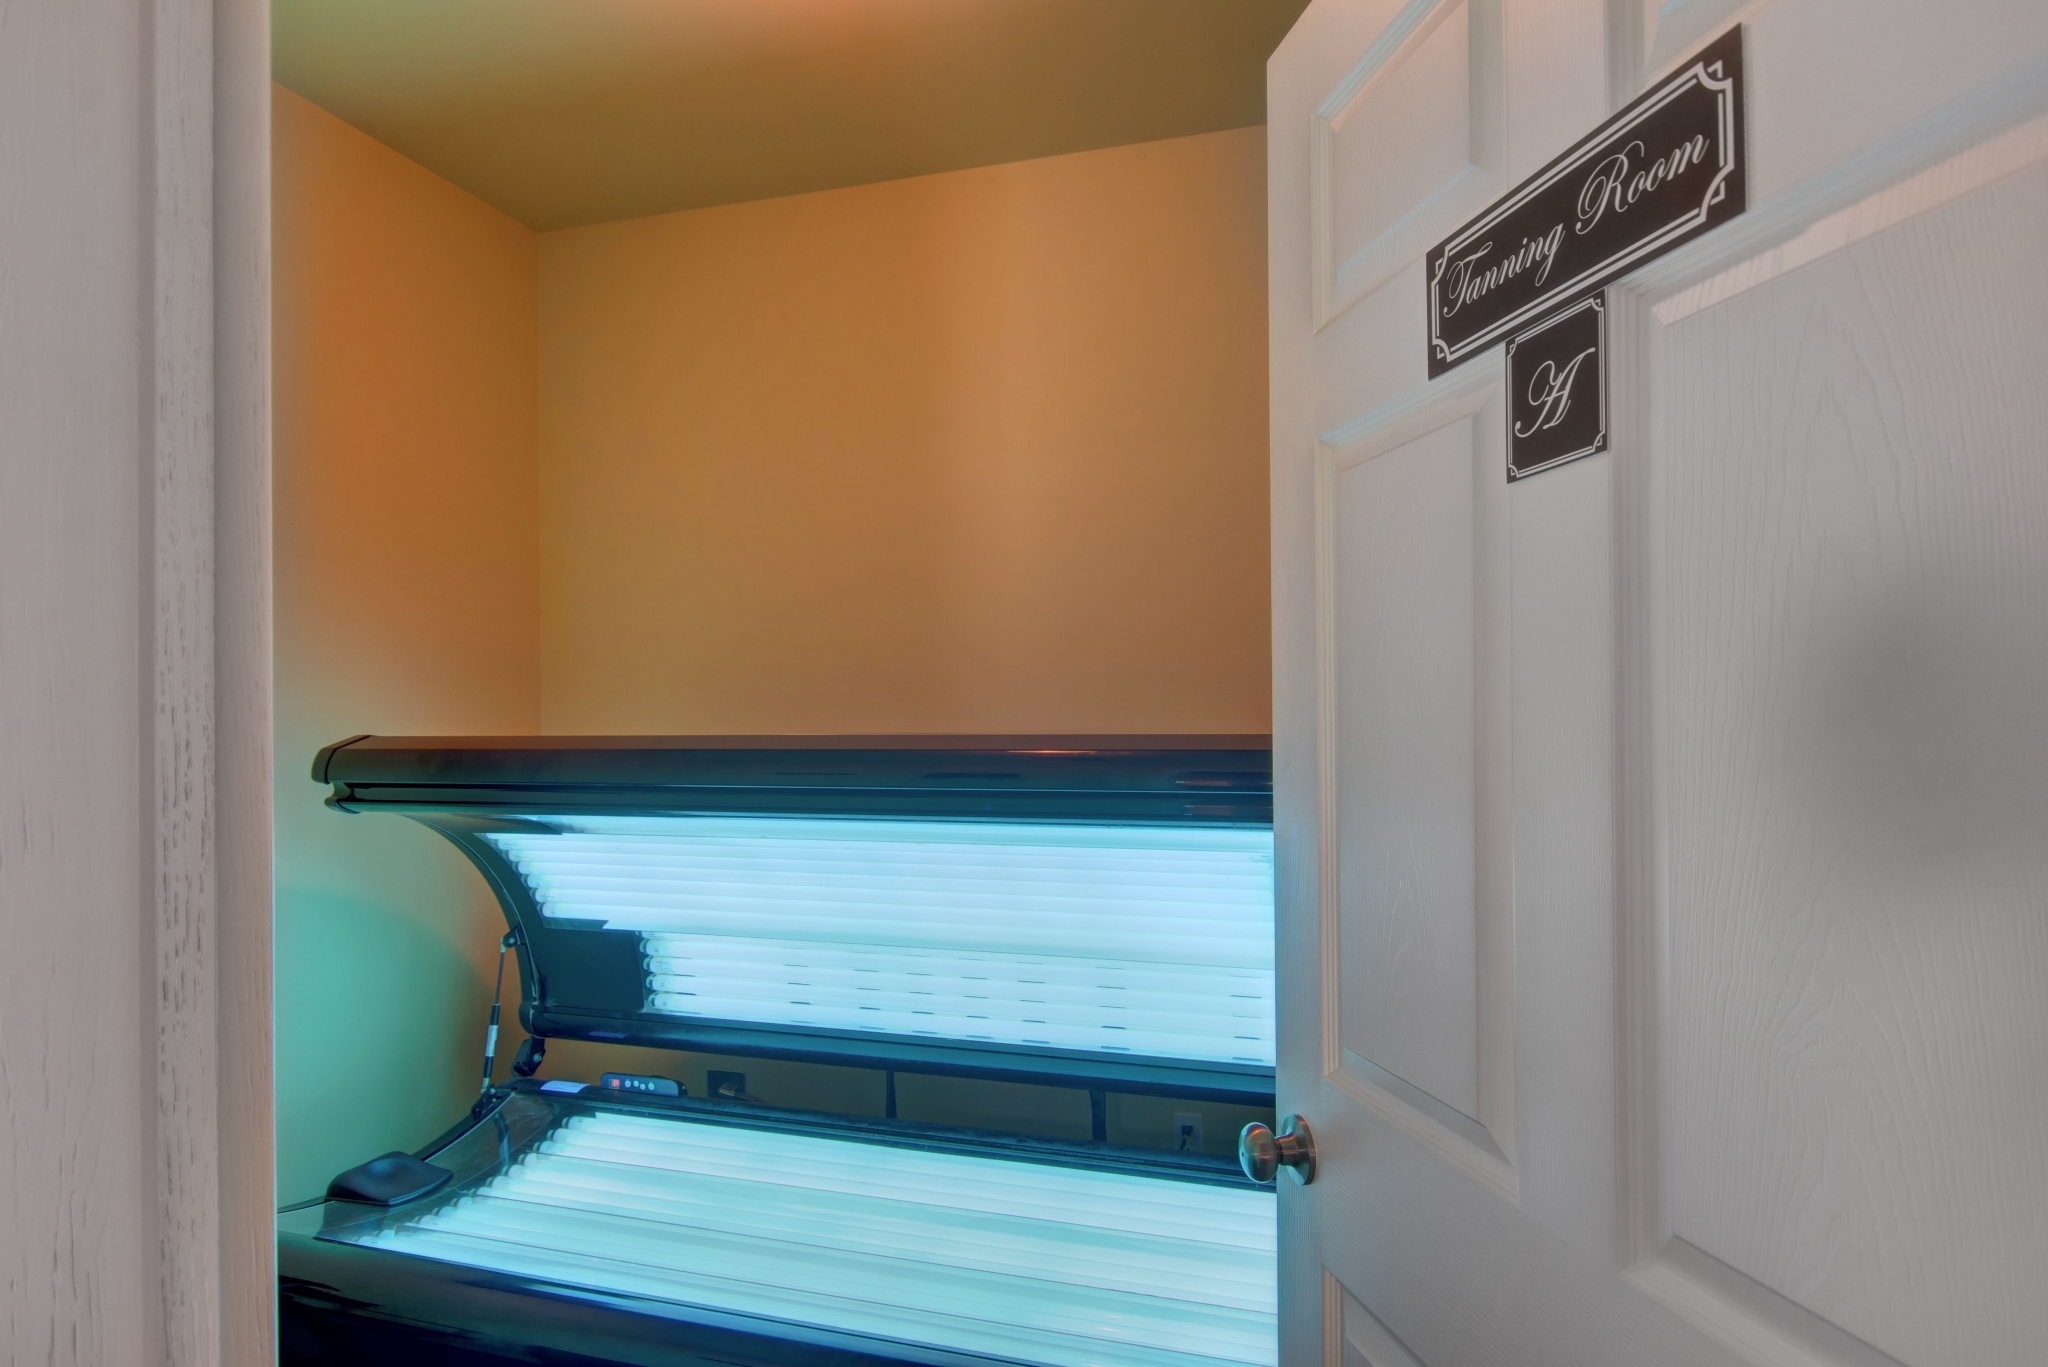 Coryell Courts Apartments amenity tanning bed